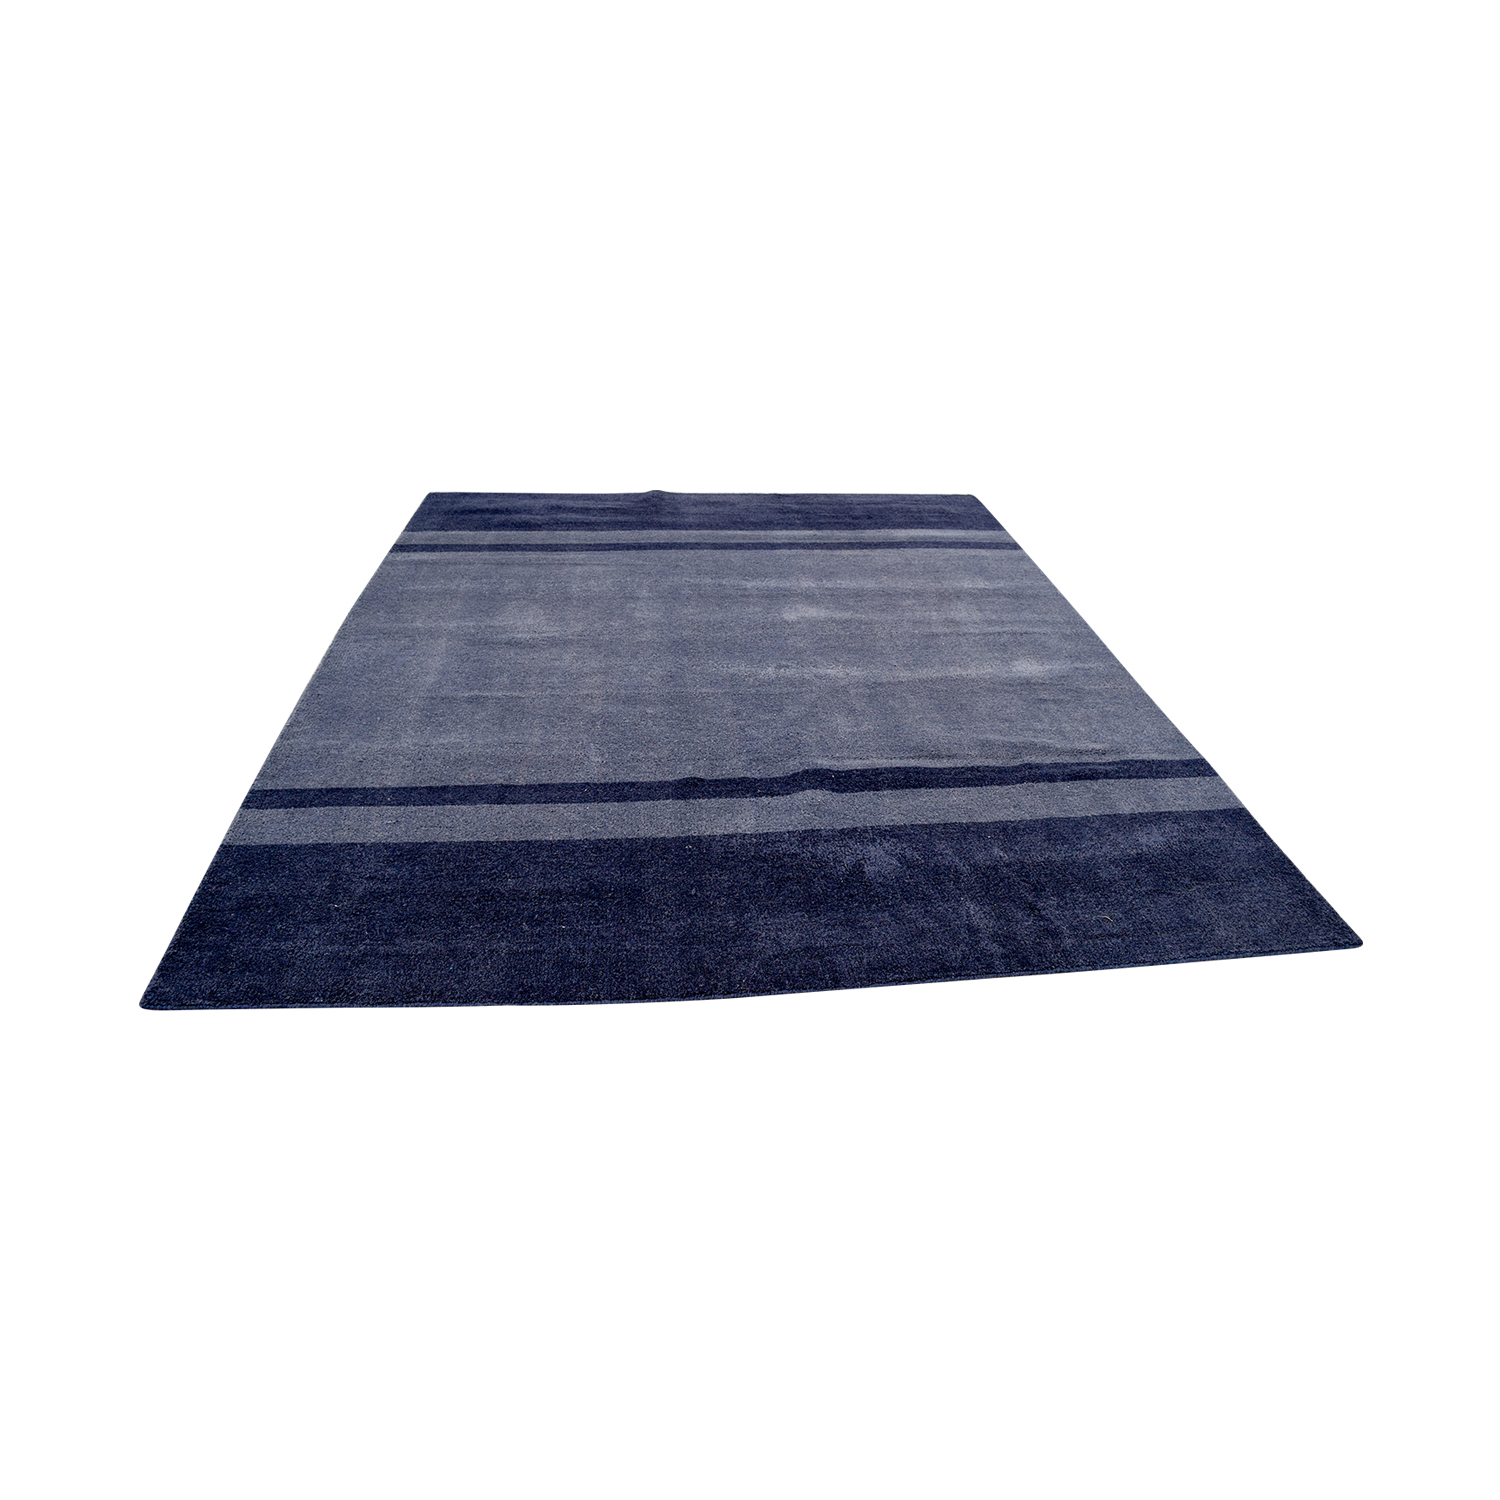 Pottery Barn Two-Toned Blue Rug / Decor